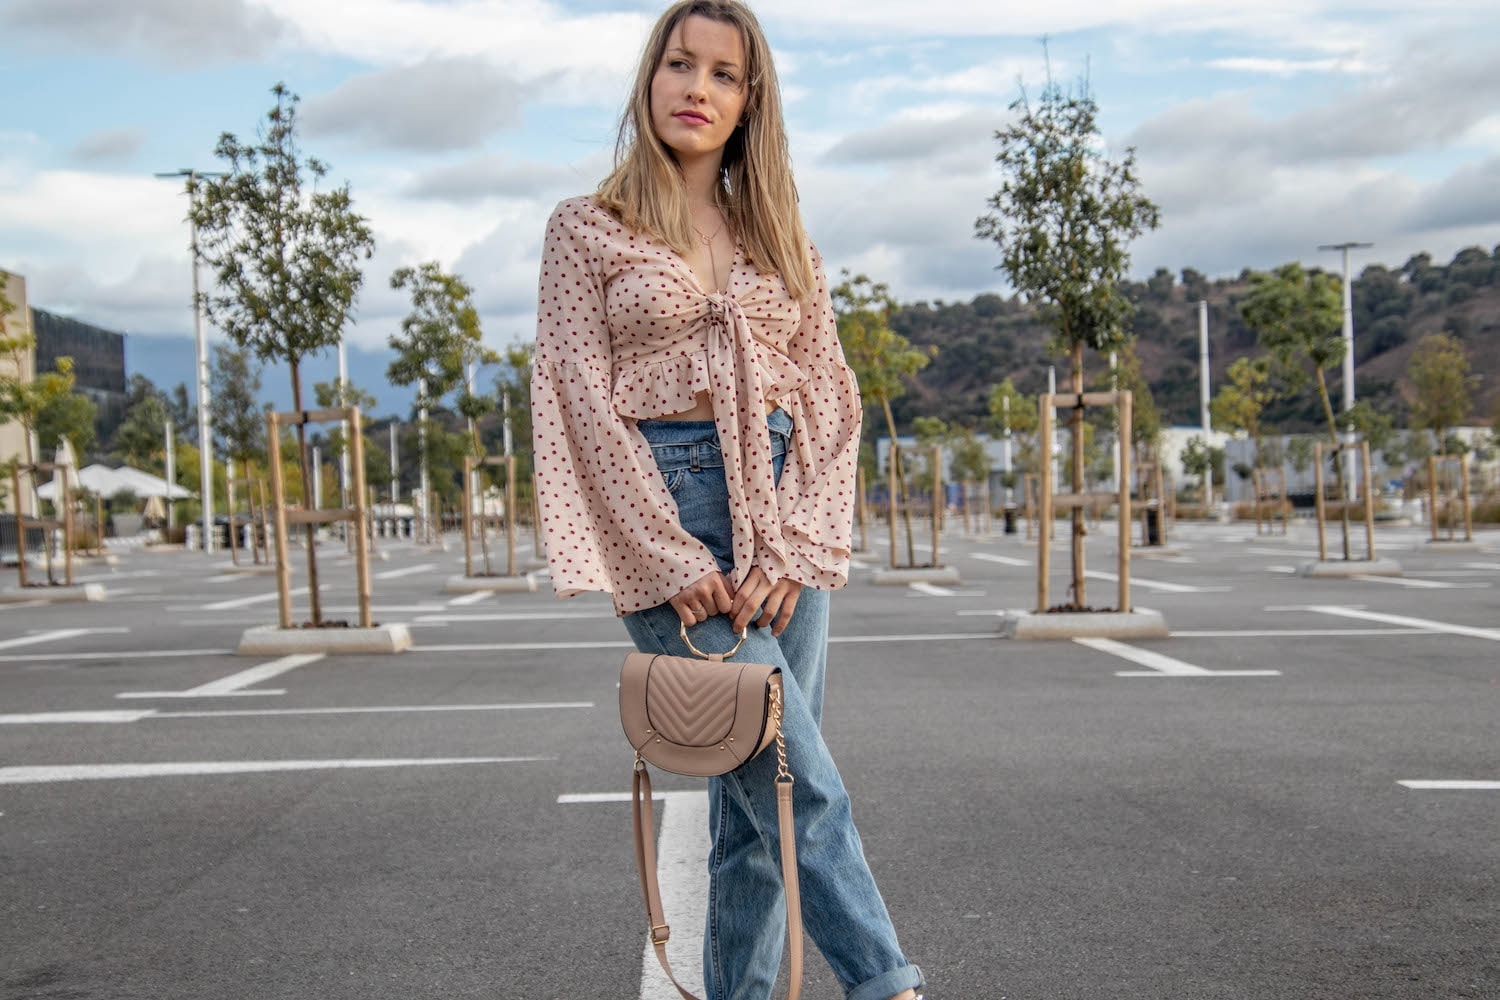 A touch of summer avec une nouvelle tenue - happinesscoco.com